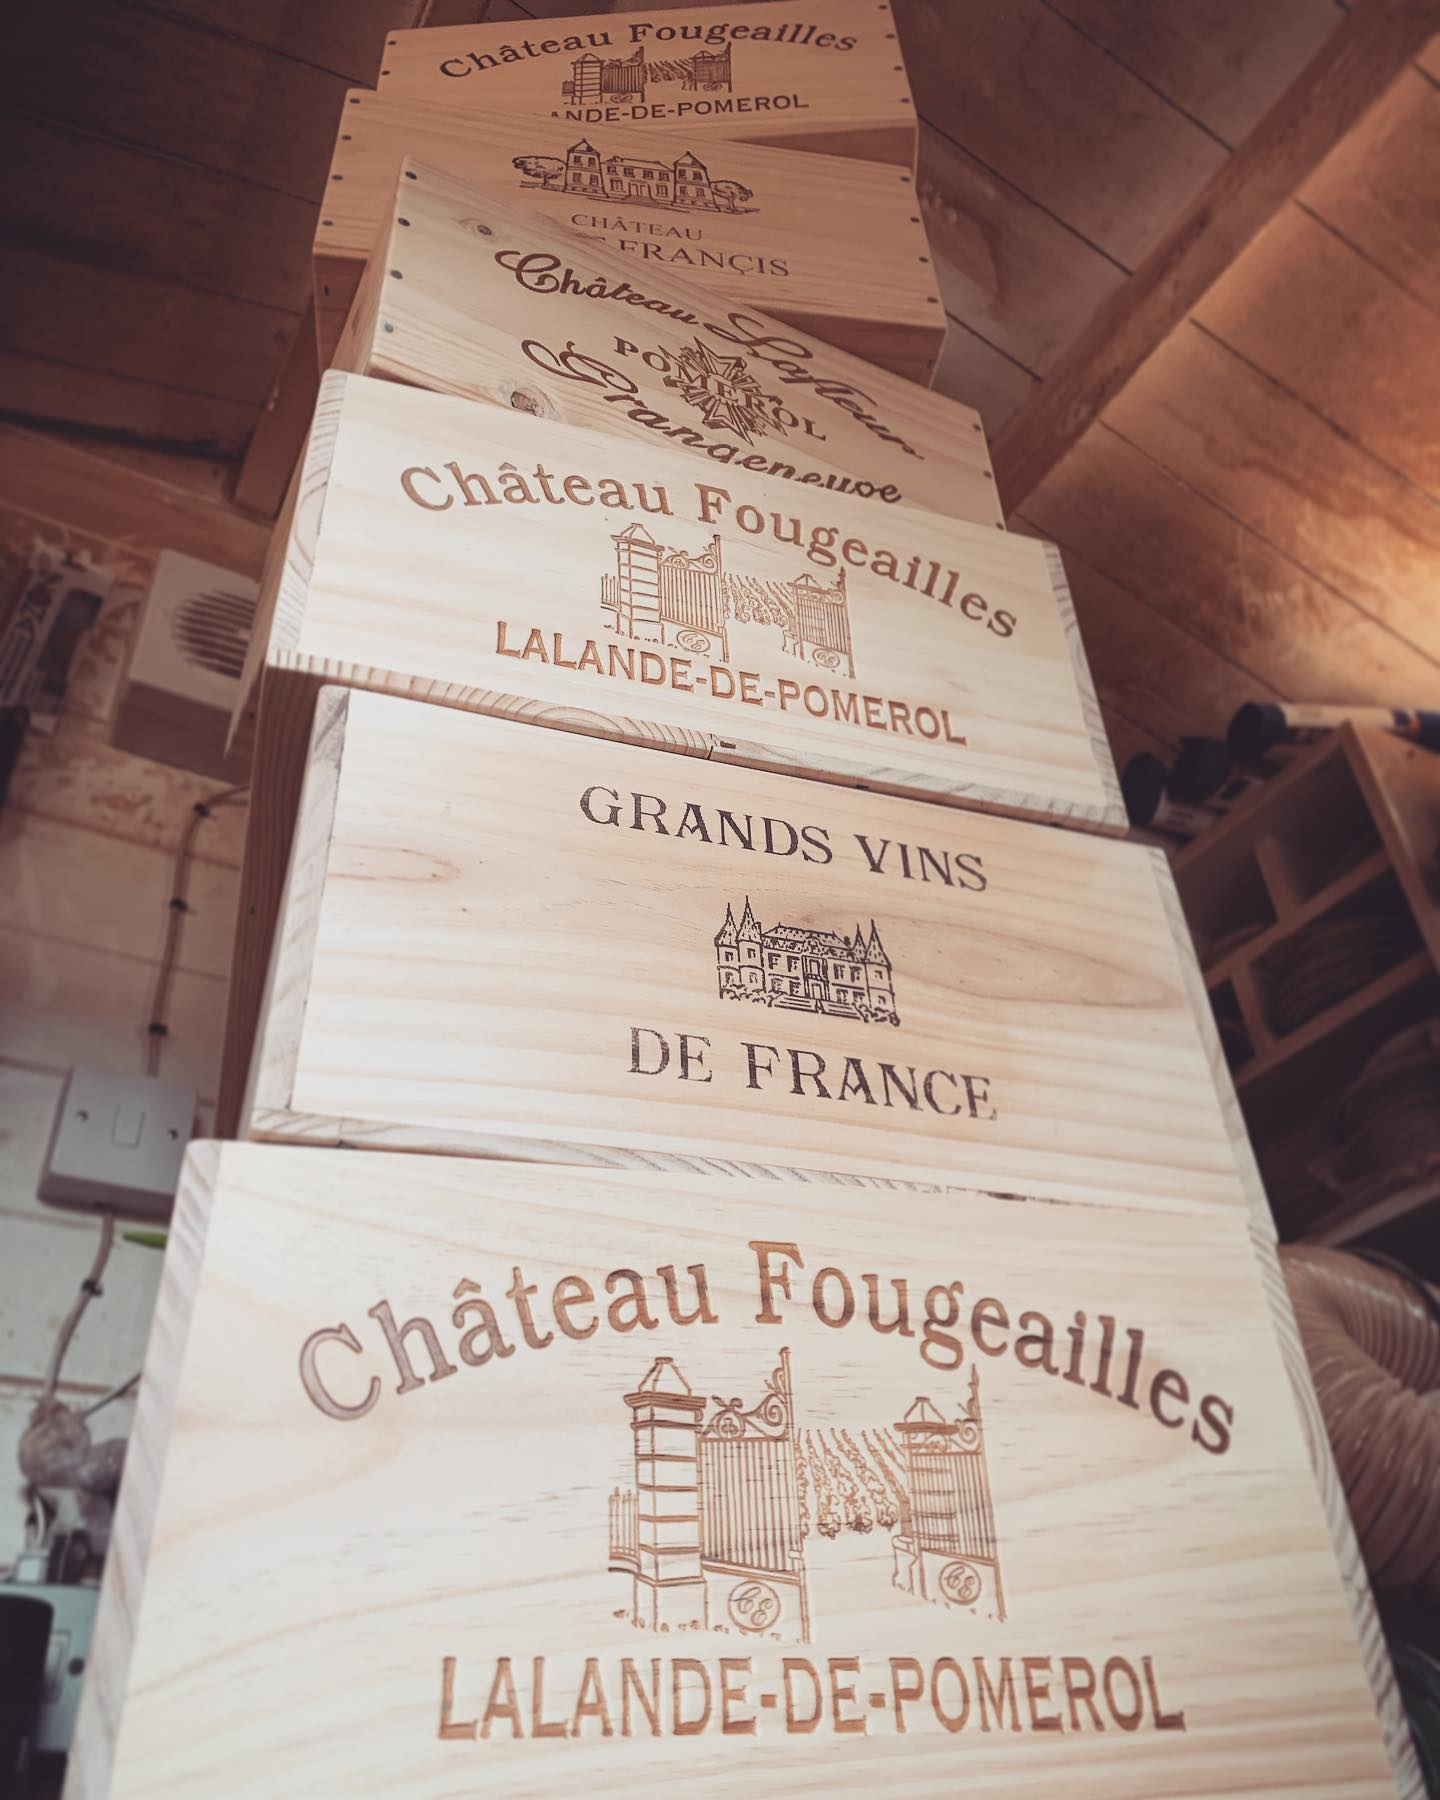 A satisfying pile of wine-boxes ready to be transformed! ...#workinprogress #handcrafted #homedecor #reclaimed #winebox #workshoplife #smallbusiness